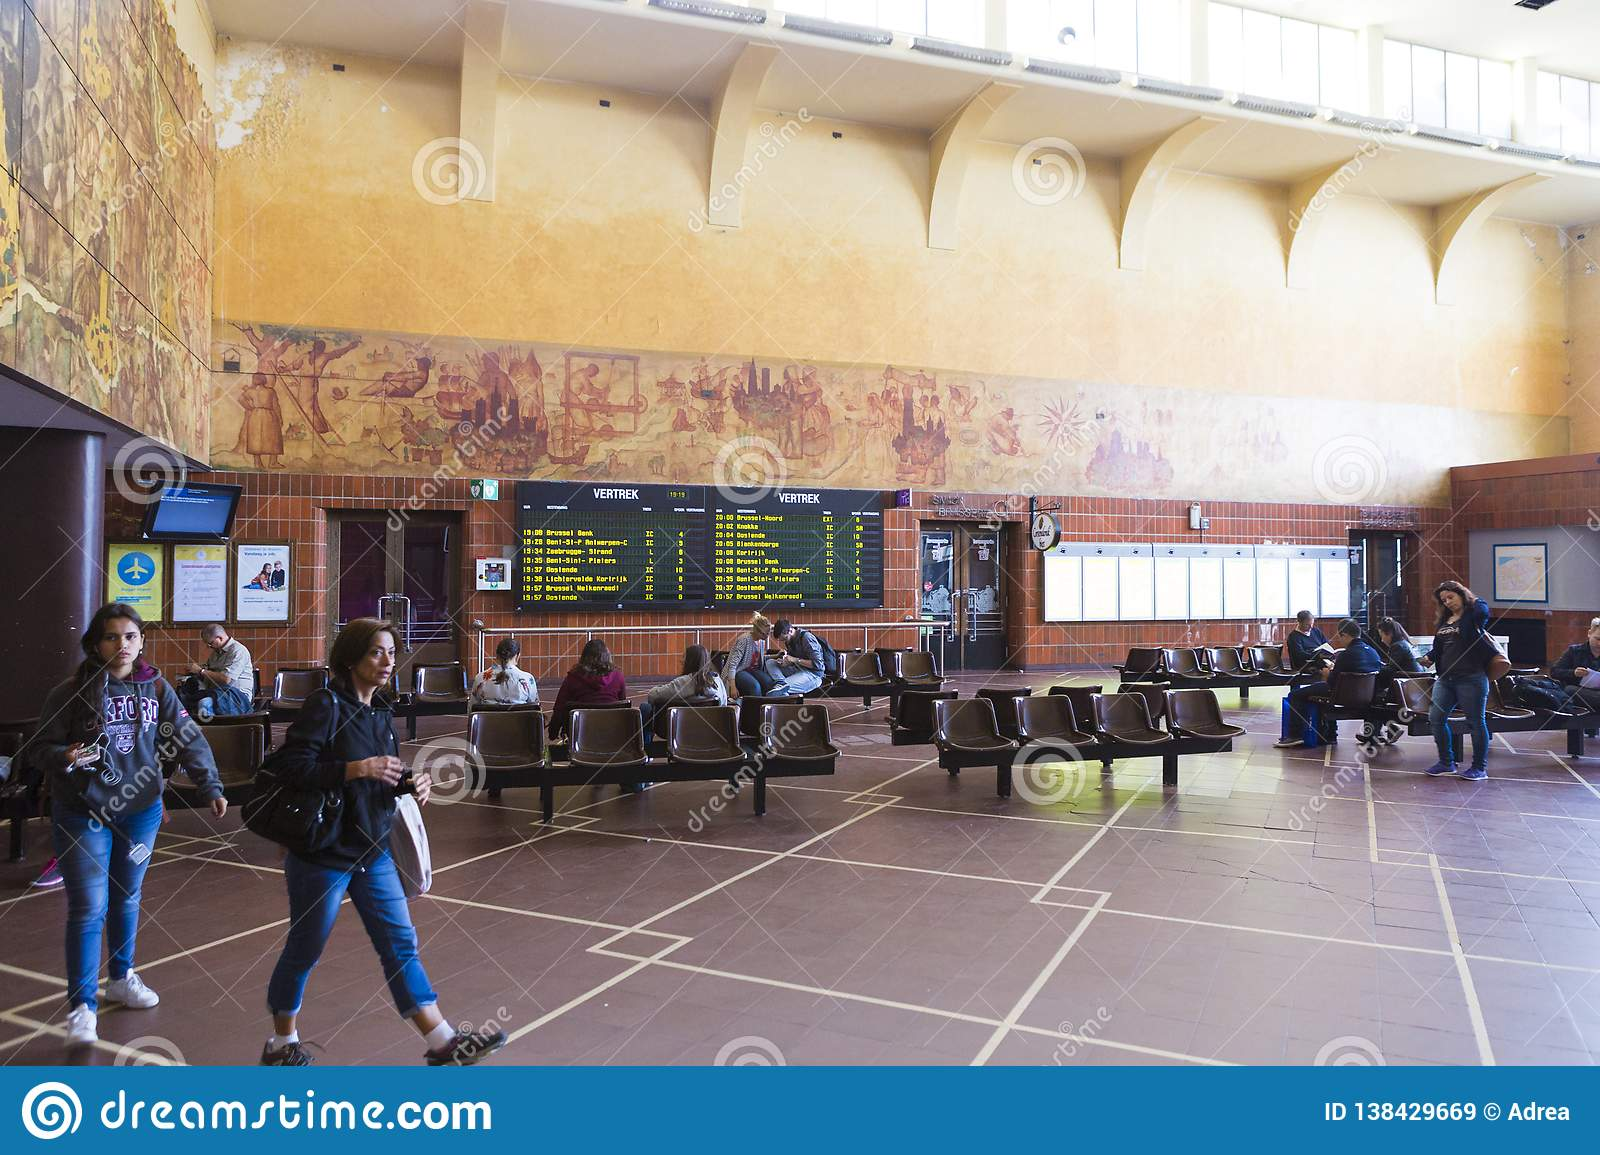 Waiting Room From Bruges Train Station Editorial Stock Image Image Of Tiles Tourism 138429669